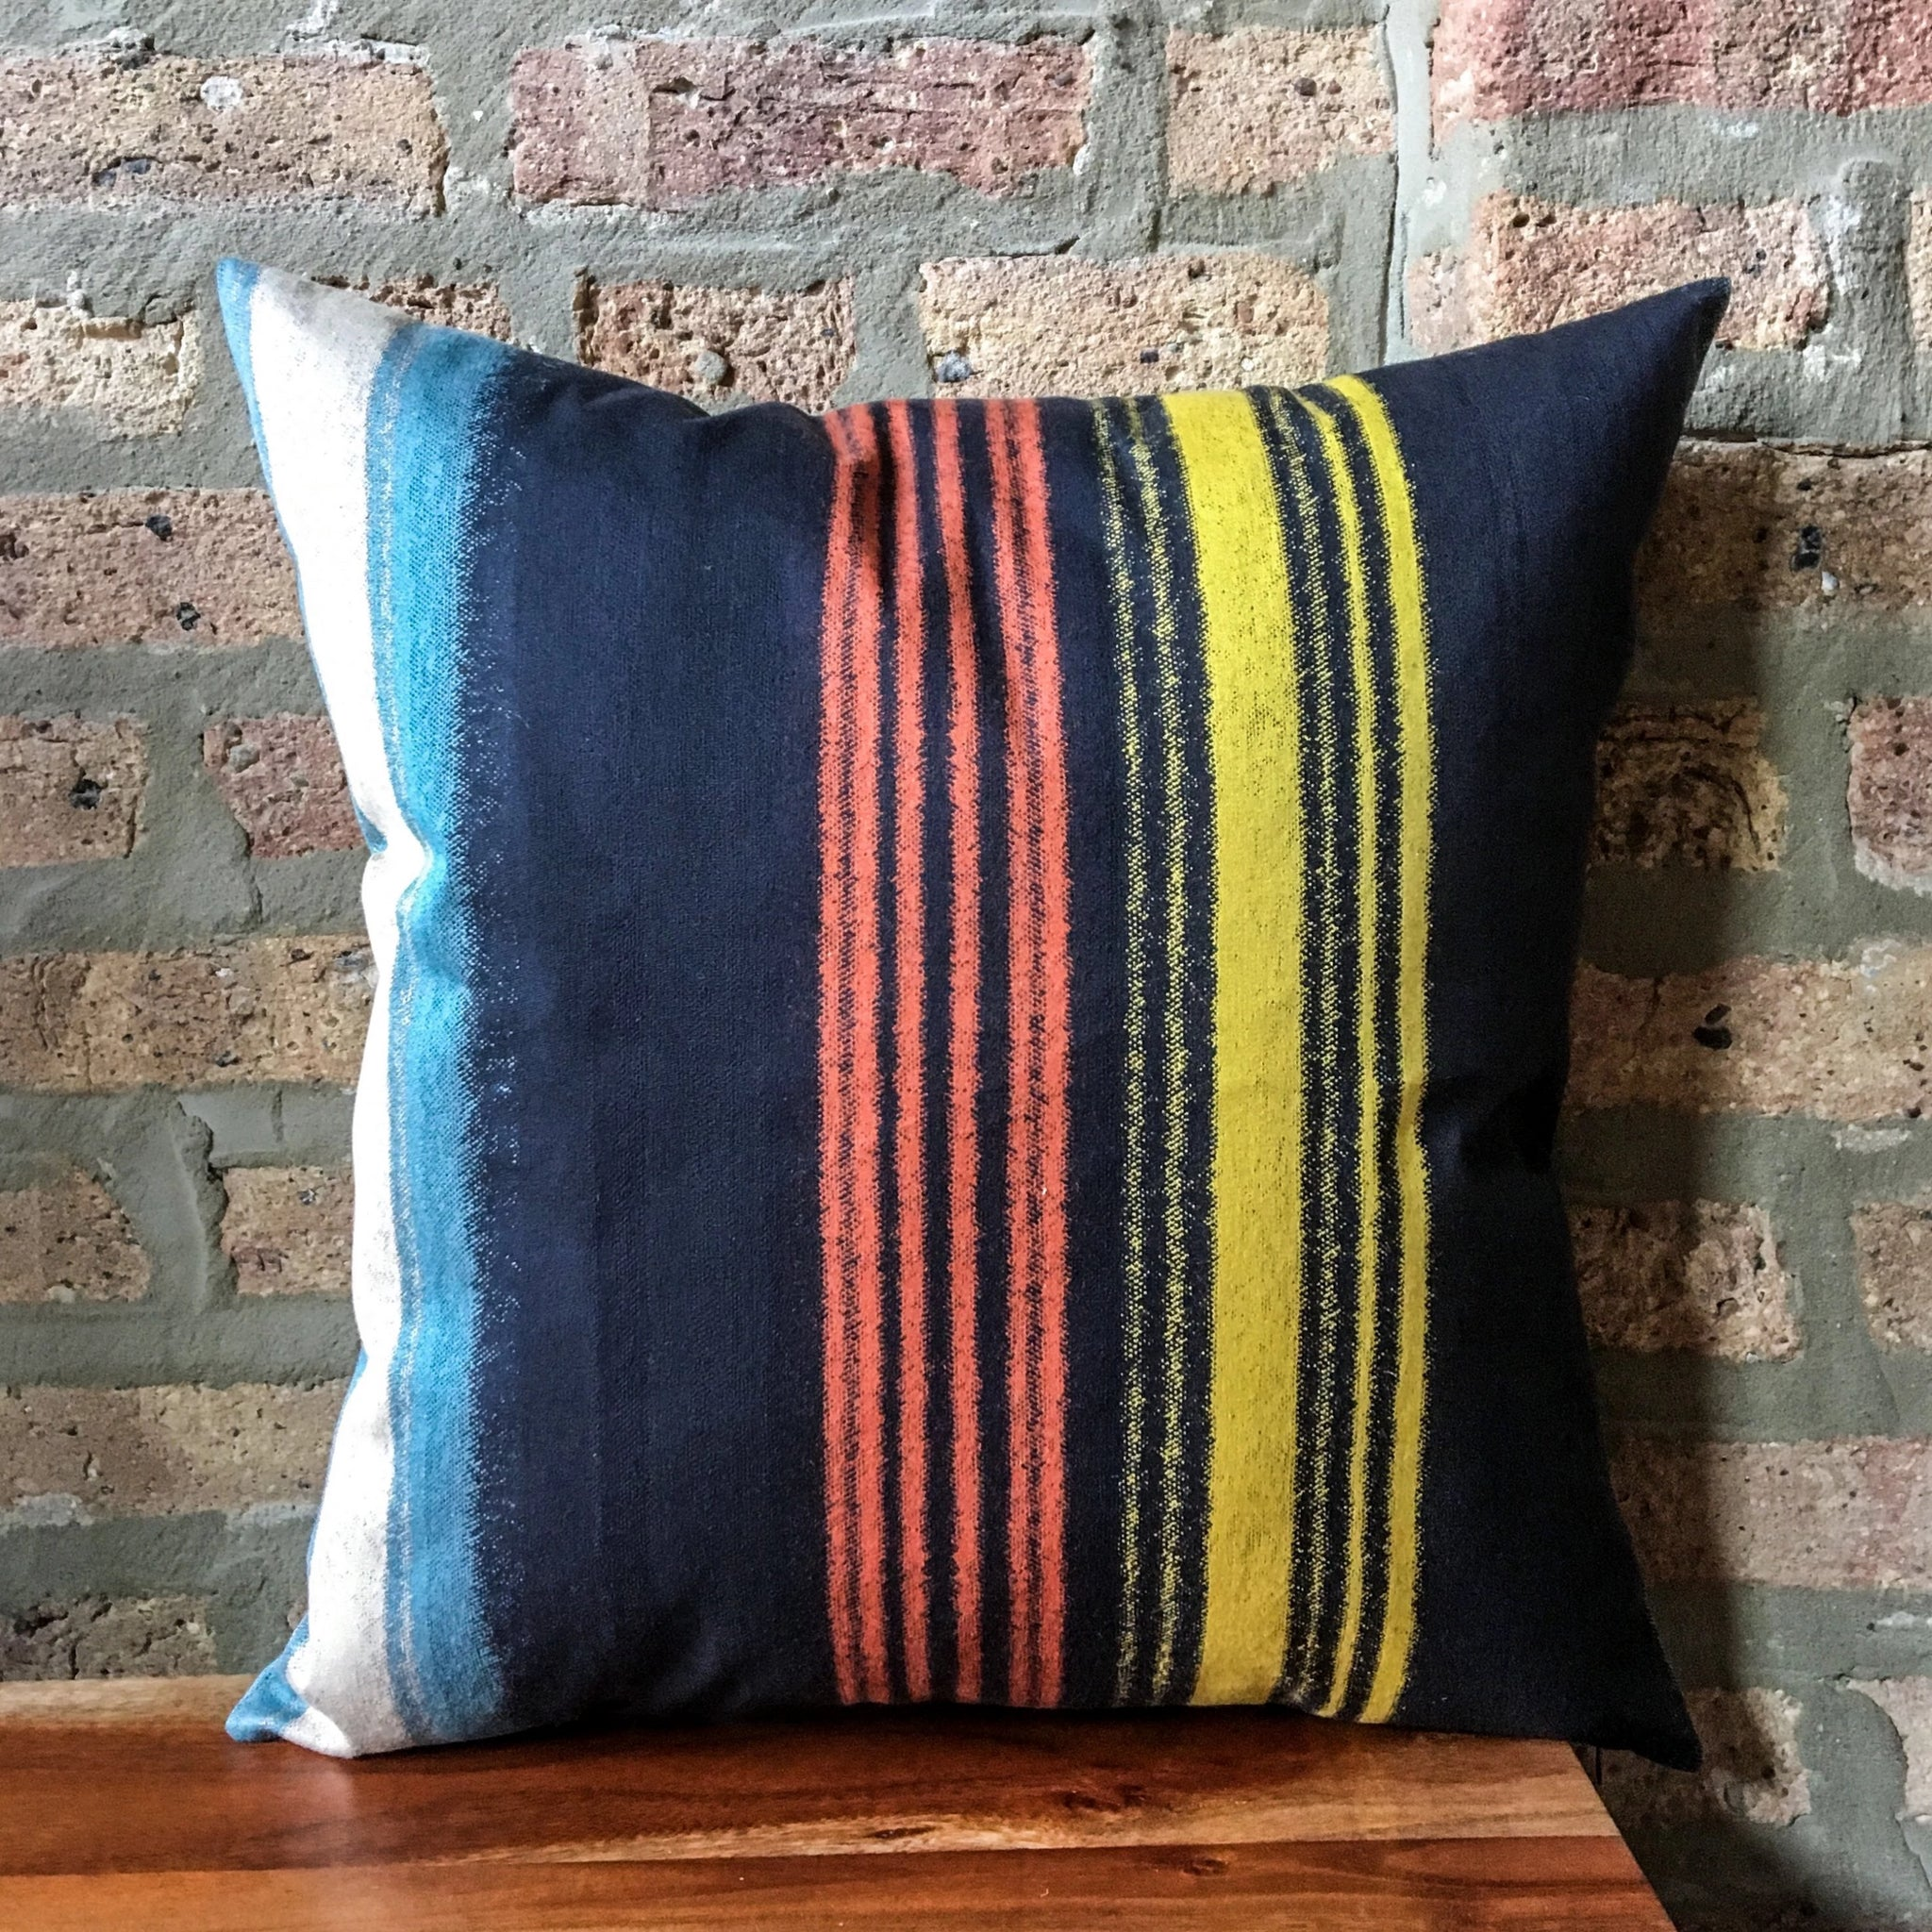 18x18 Navy Blue, Red, Yellow Striped Pillow Covers | Casual Decor | Handmade